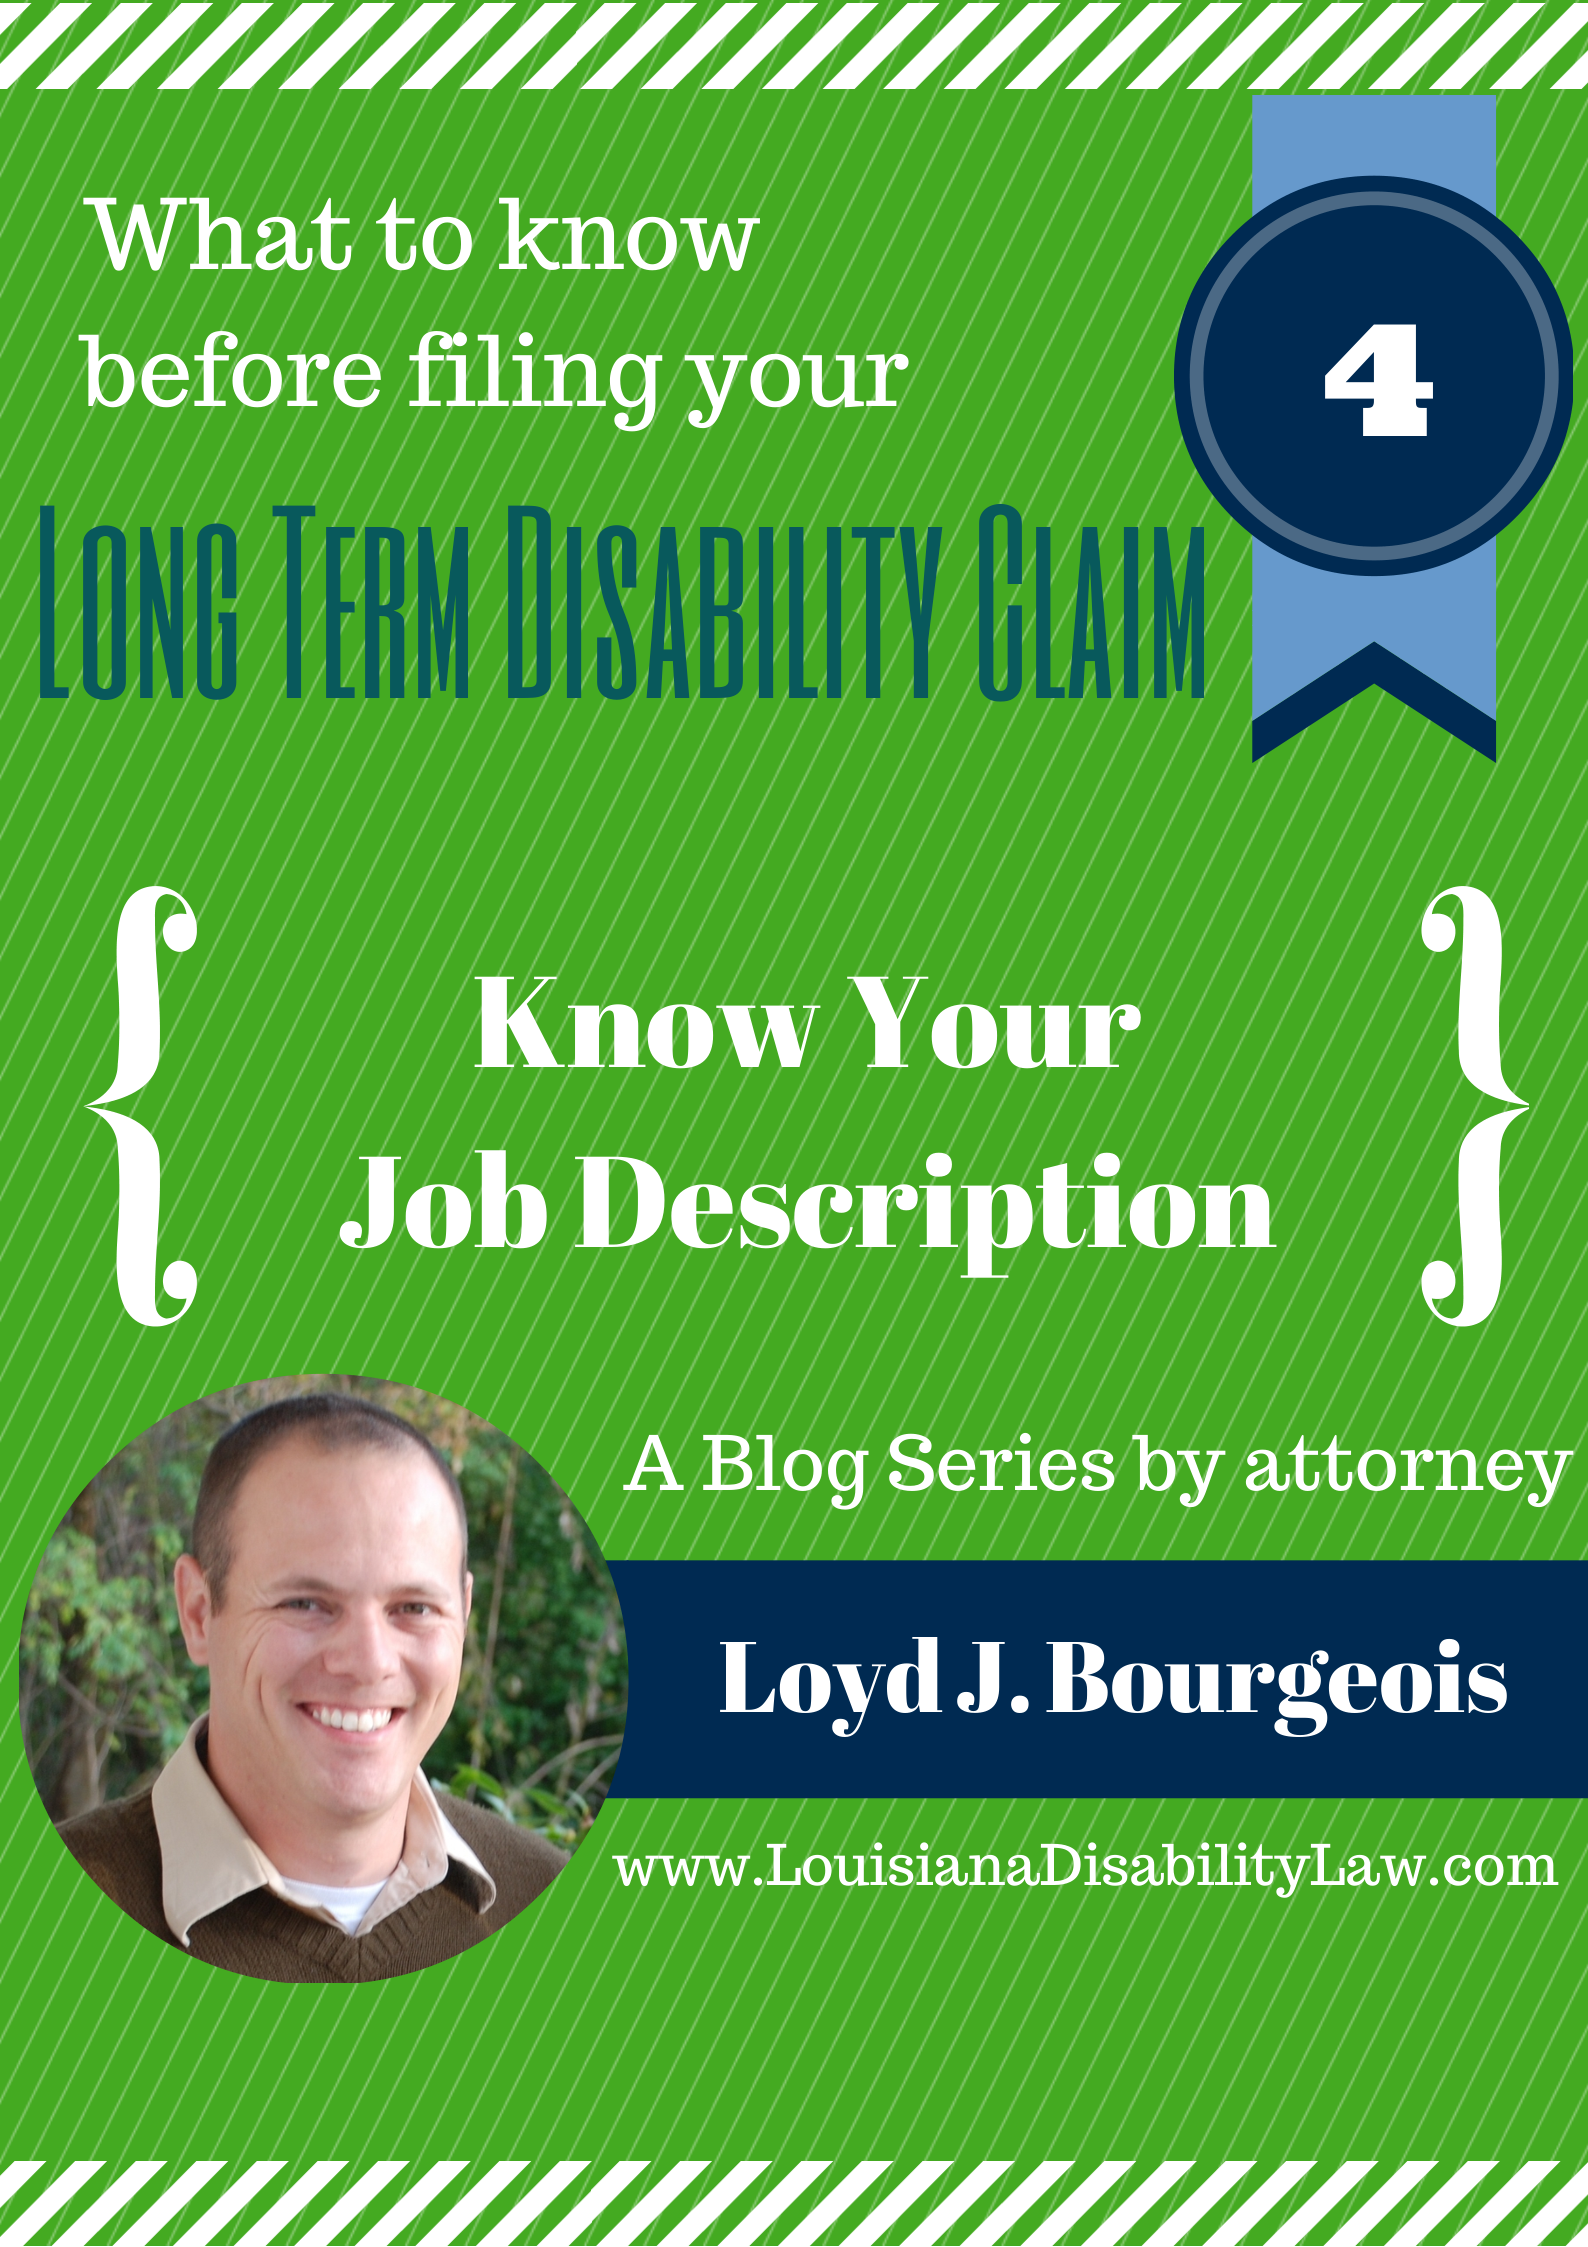 What to know before filing you Long-Term Disability claim: Know your Job Description